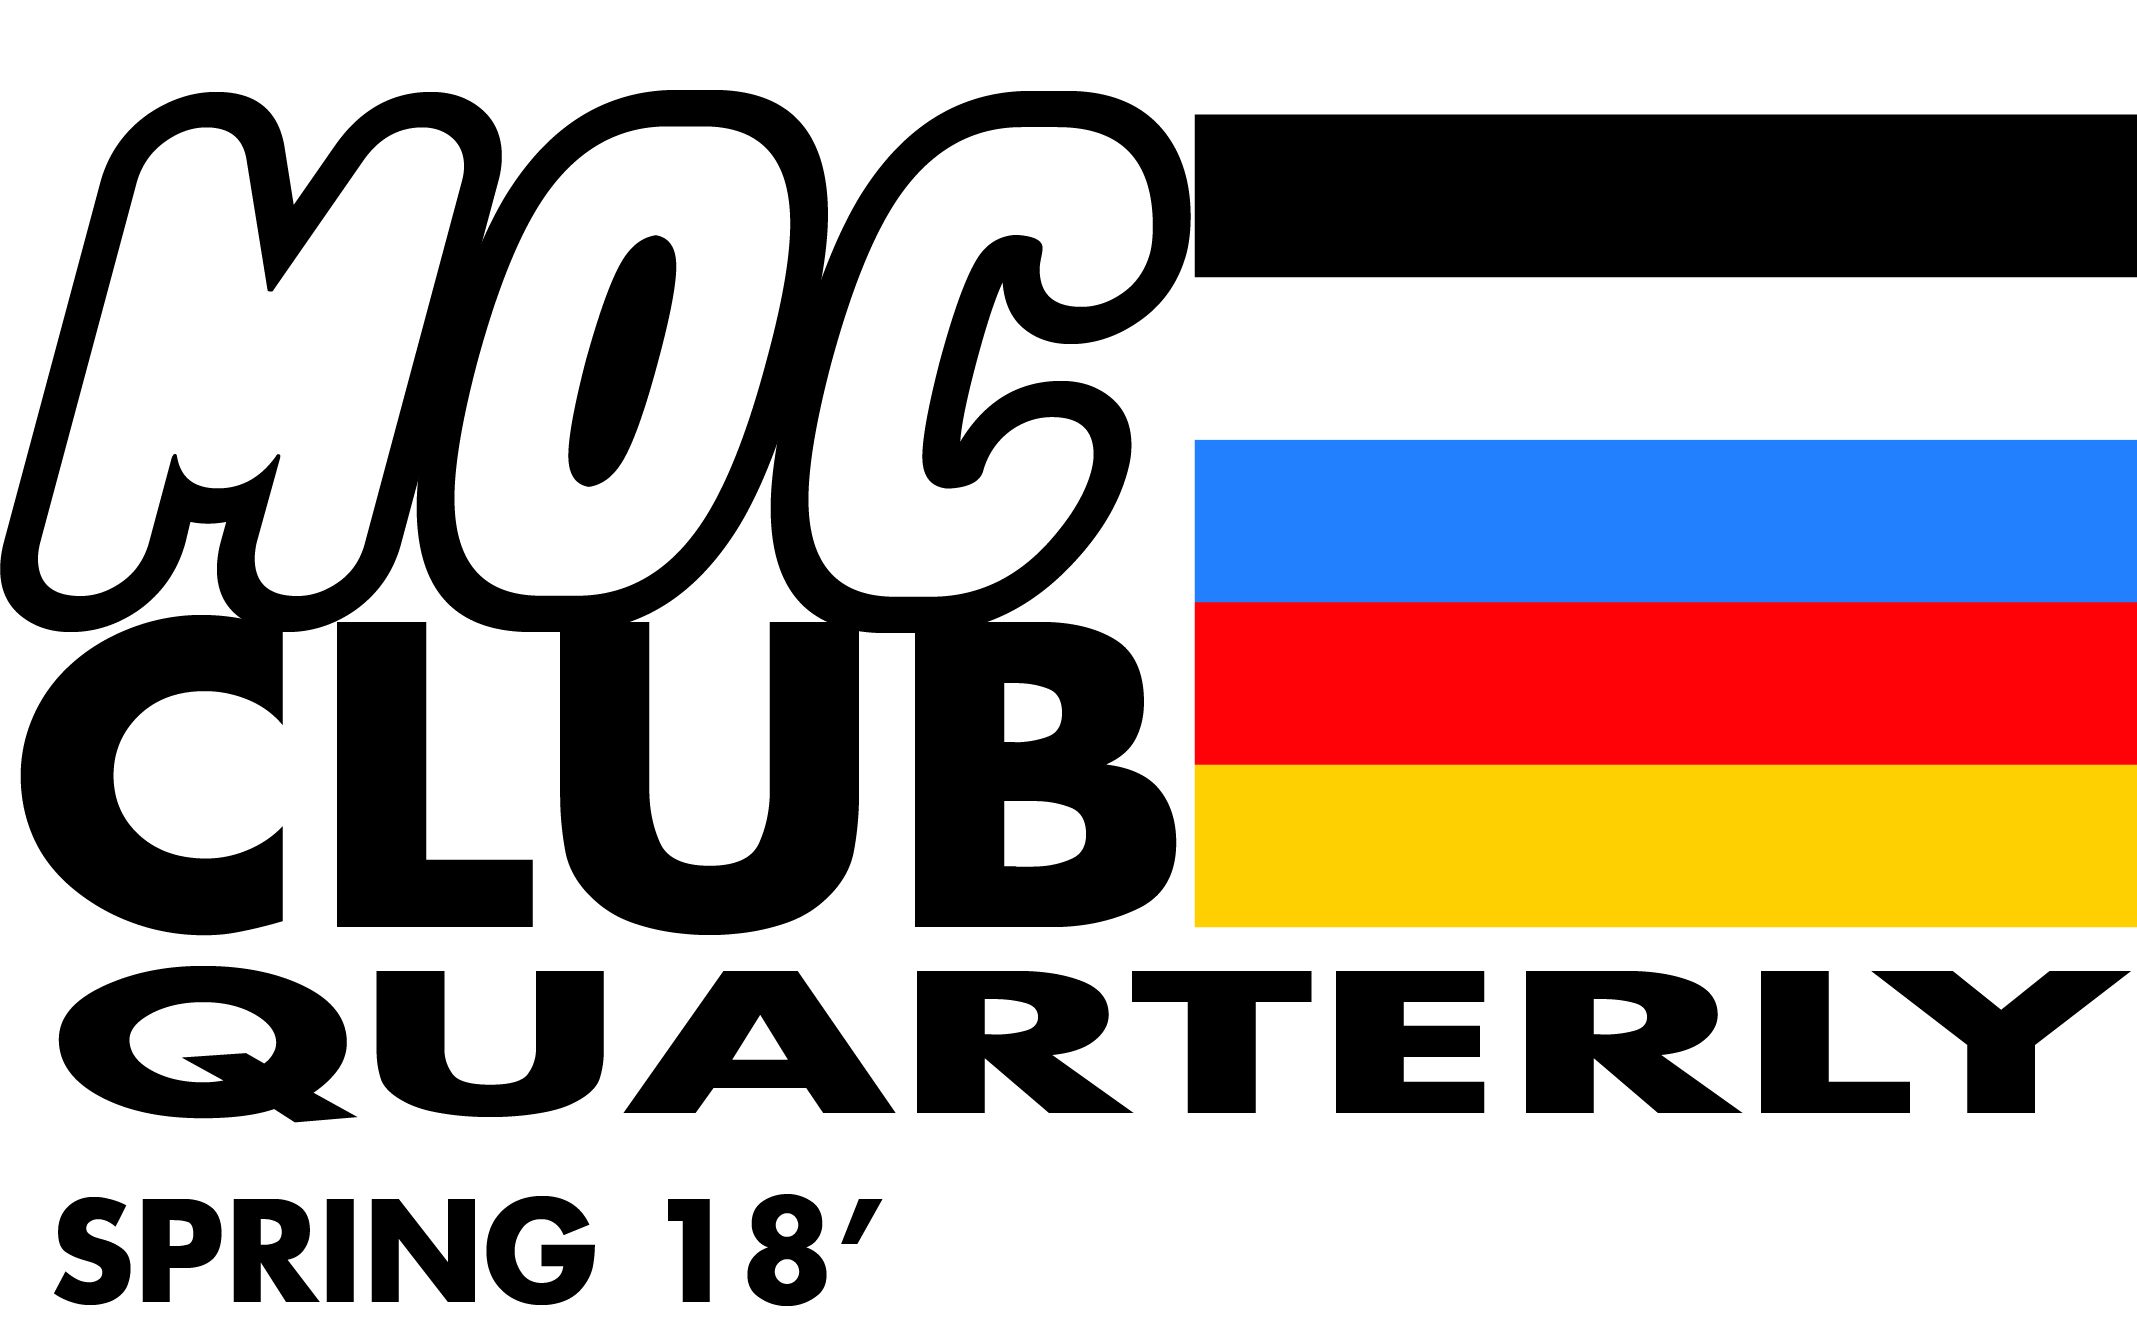 moc-club-quarterly-spring-18-01.jpg